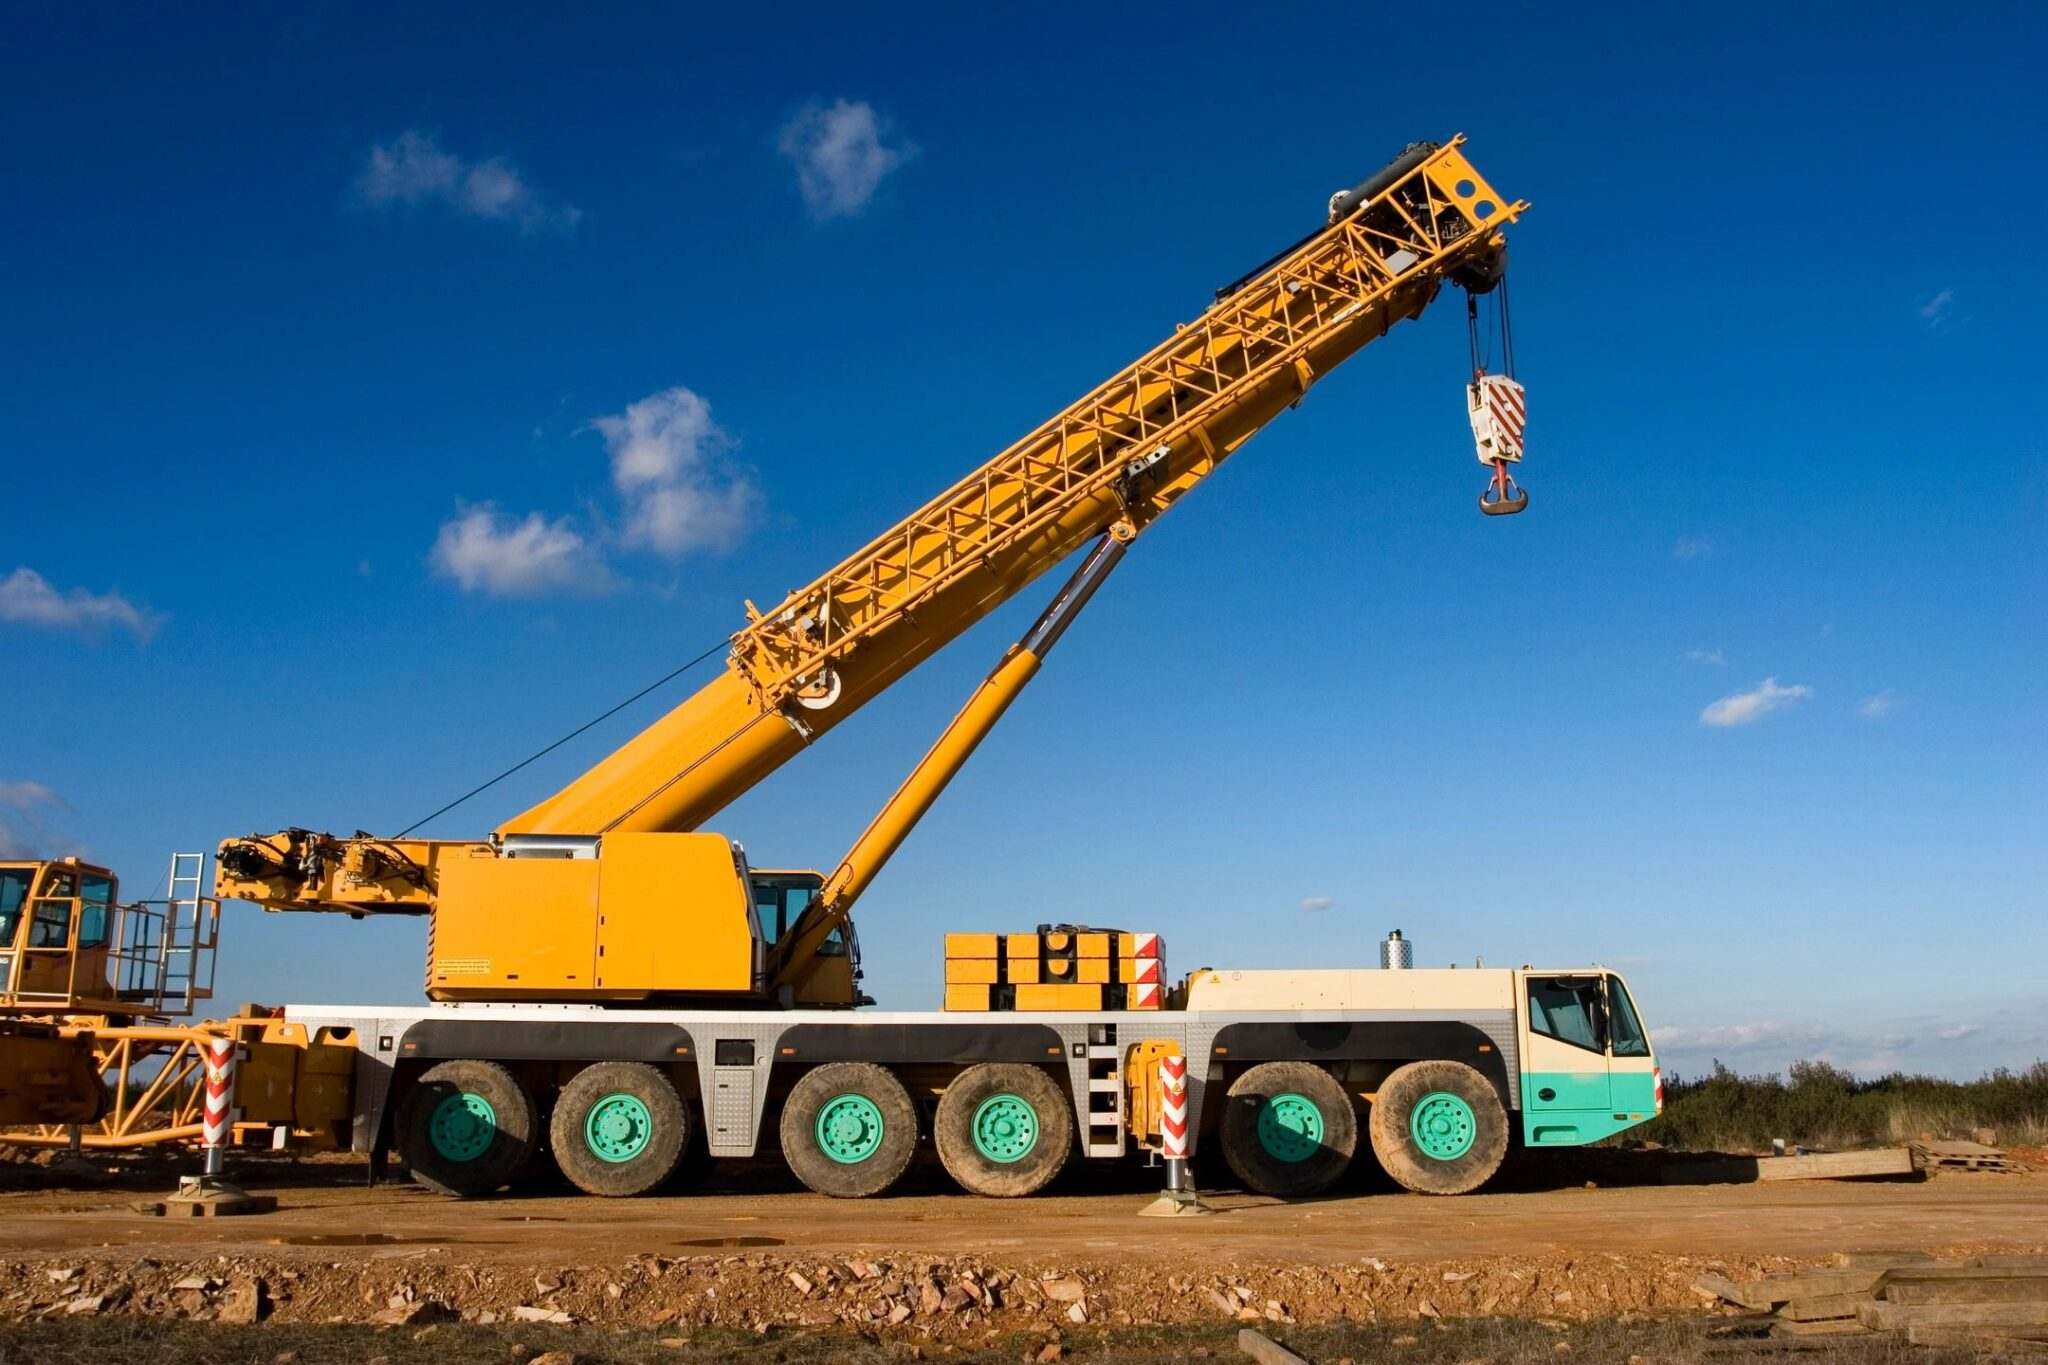 Crane Equipment Finance